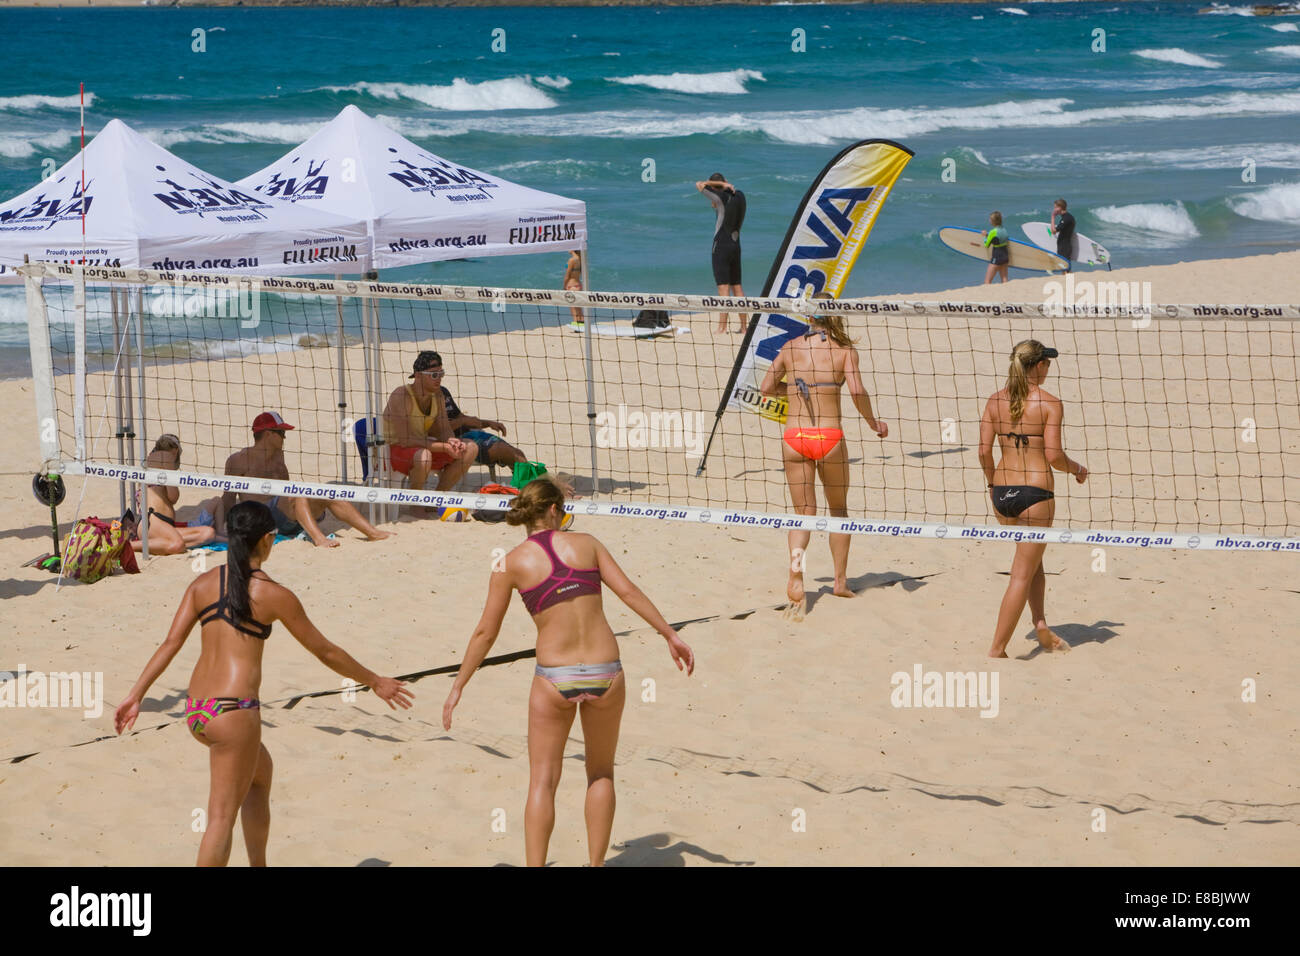 Beach Volleyball Being Played On A Court At Manly Stock Photo Alamy